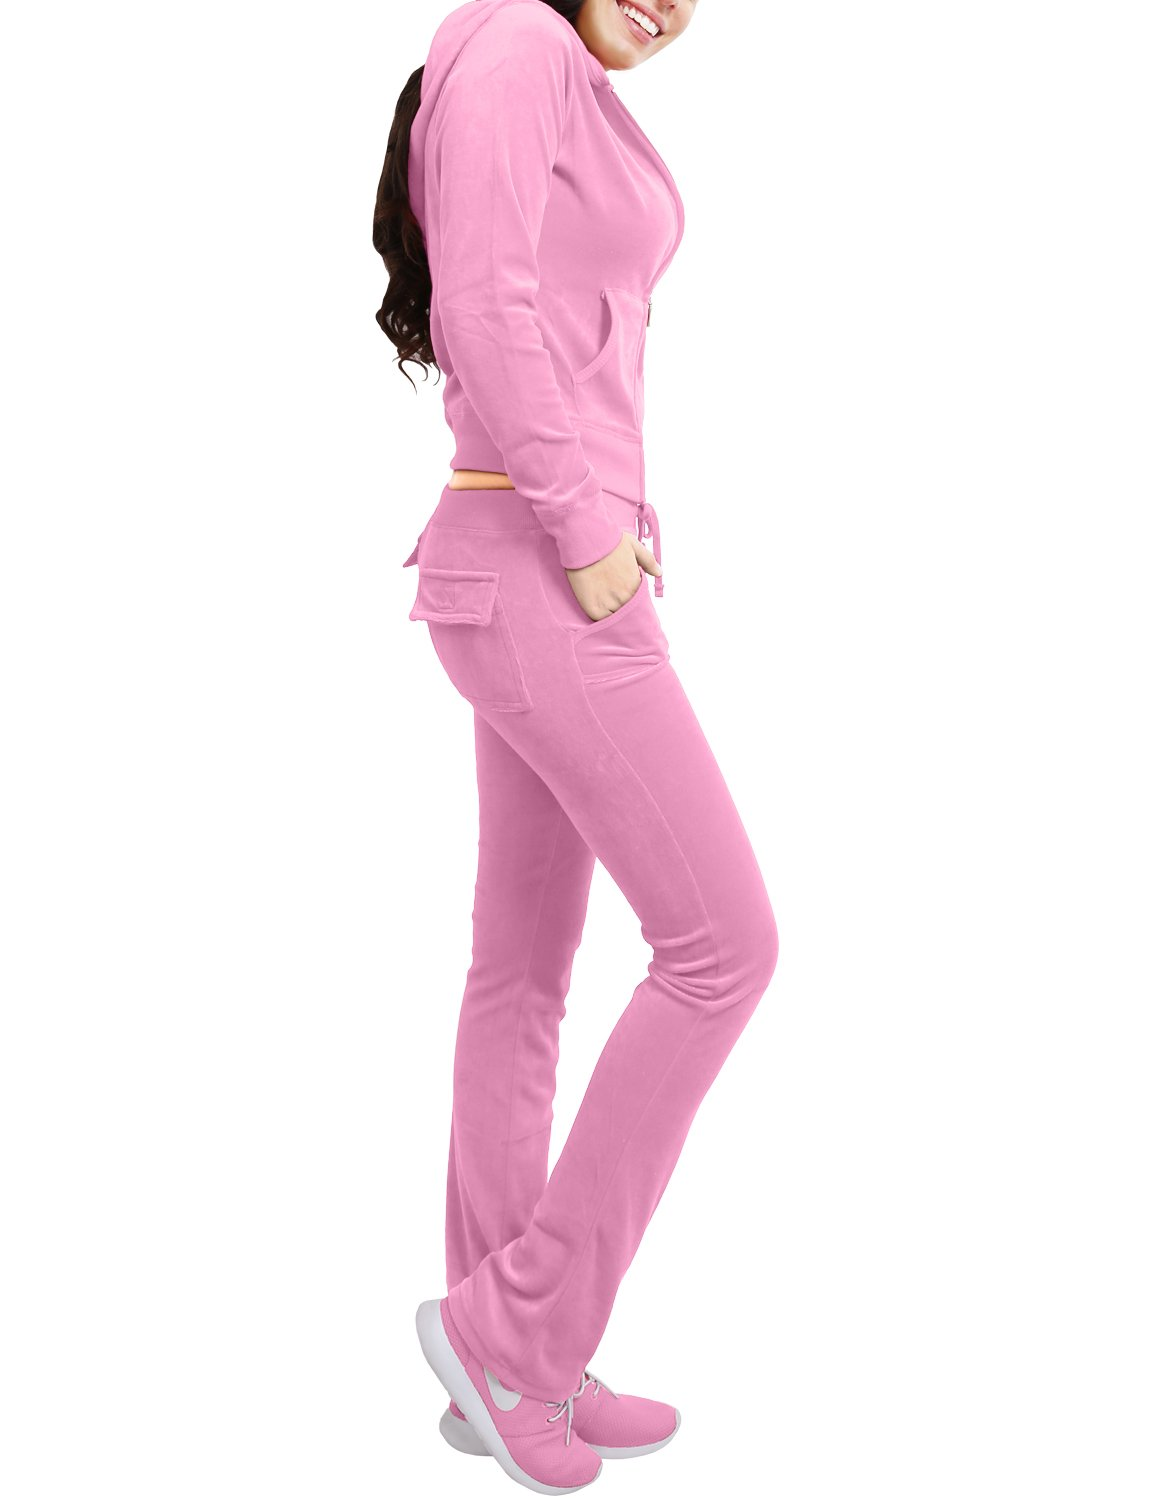 NE PEOPLE Womens Casual Basic Velour/ Terry Zip Up Hoodie Sweatsuit Set